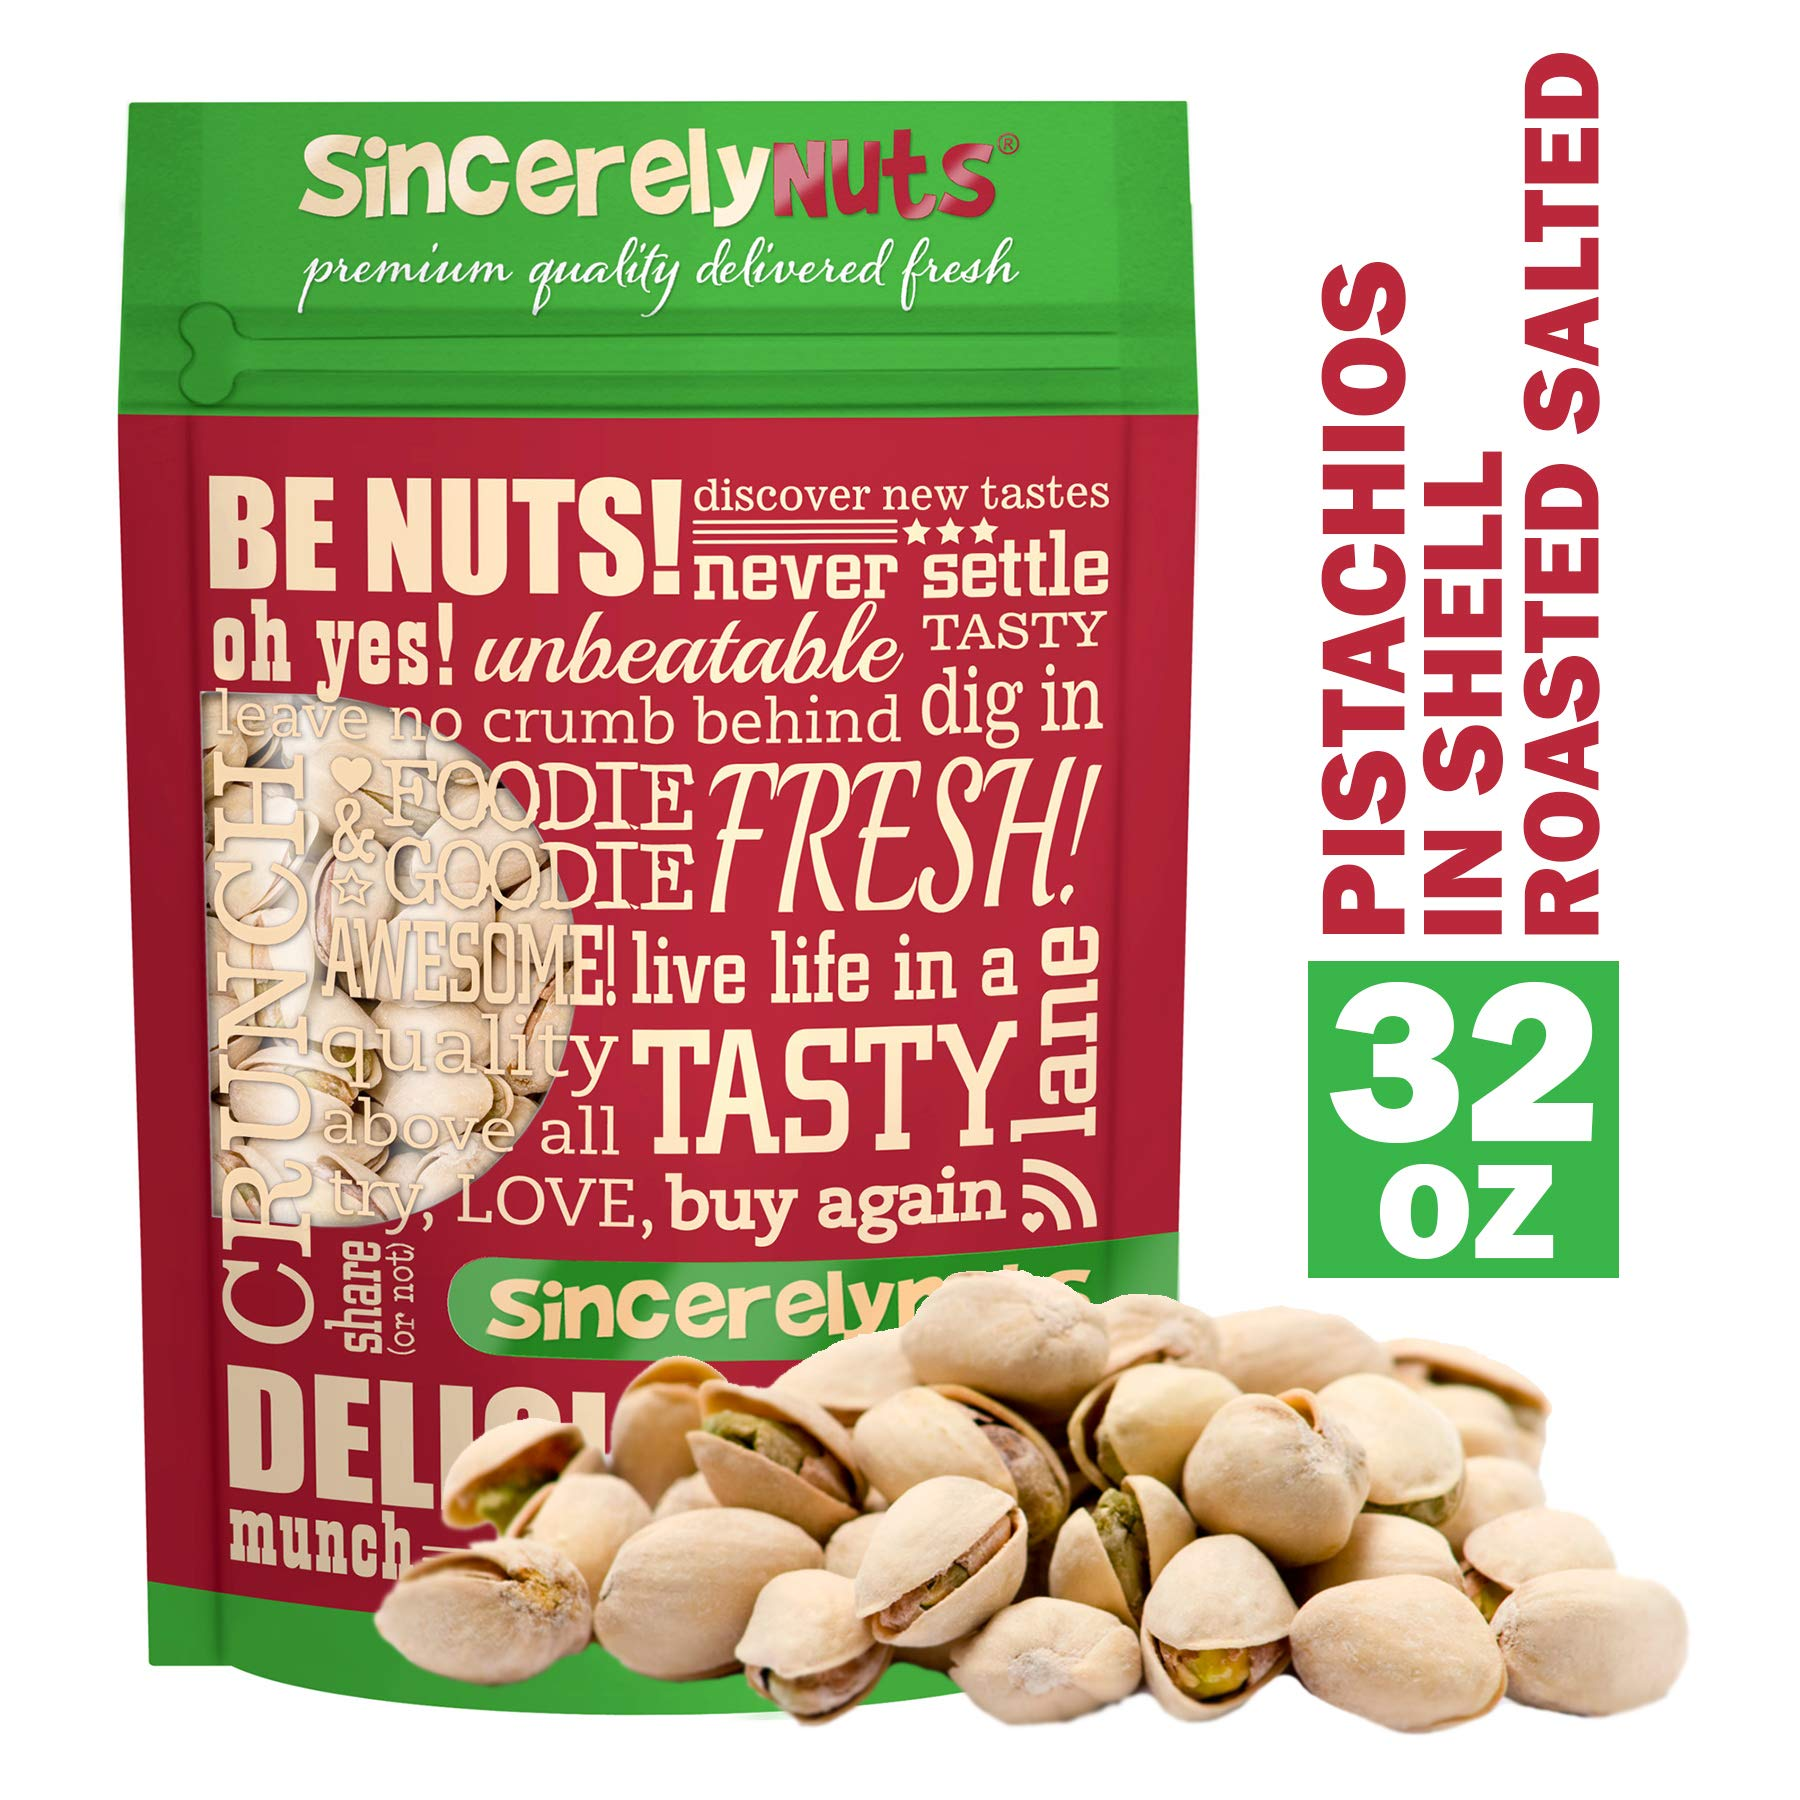 Sincerely Nuts Large Pistachios Roasted & Salted in Shell - 2Lb. Bag   Healthy Snack Food   Great for Cooking   Source of Fiber, Protein, Vitamins & Minerals   Gourmet Flavor   Kosher & Gluten Free